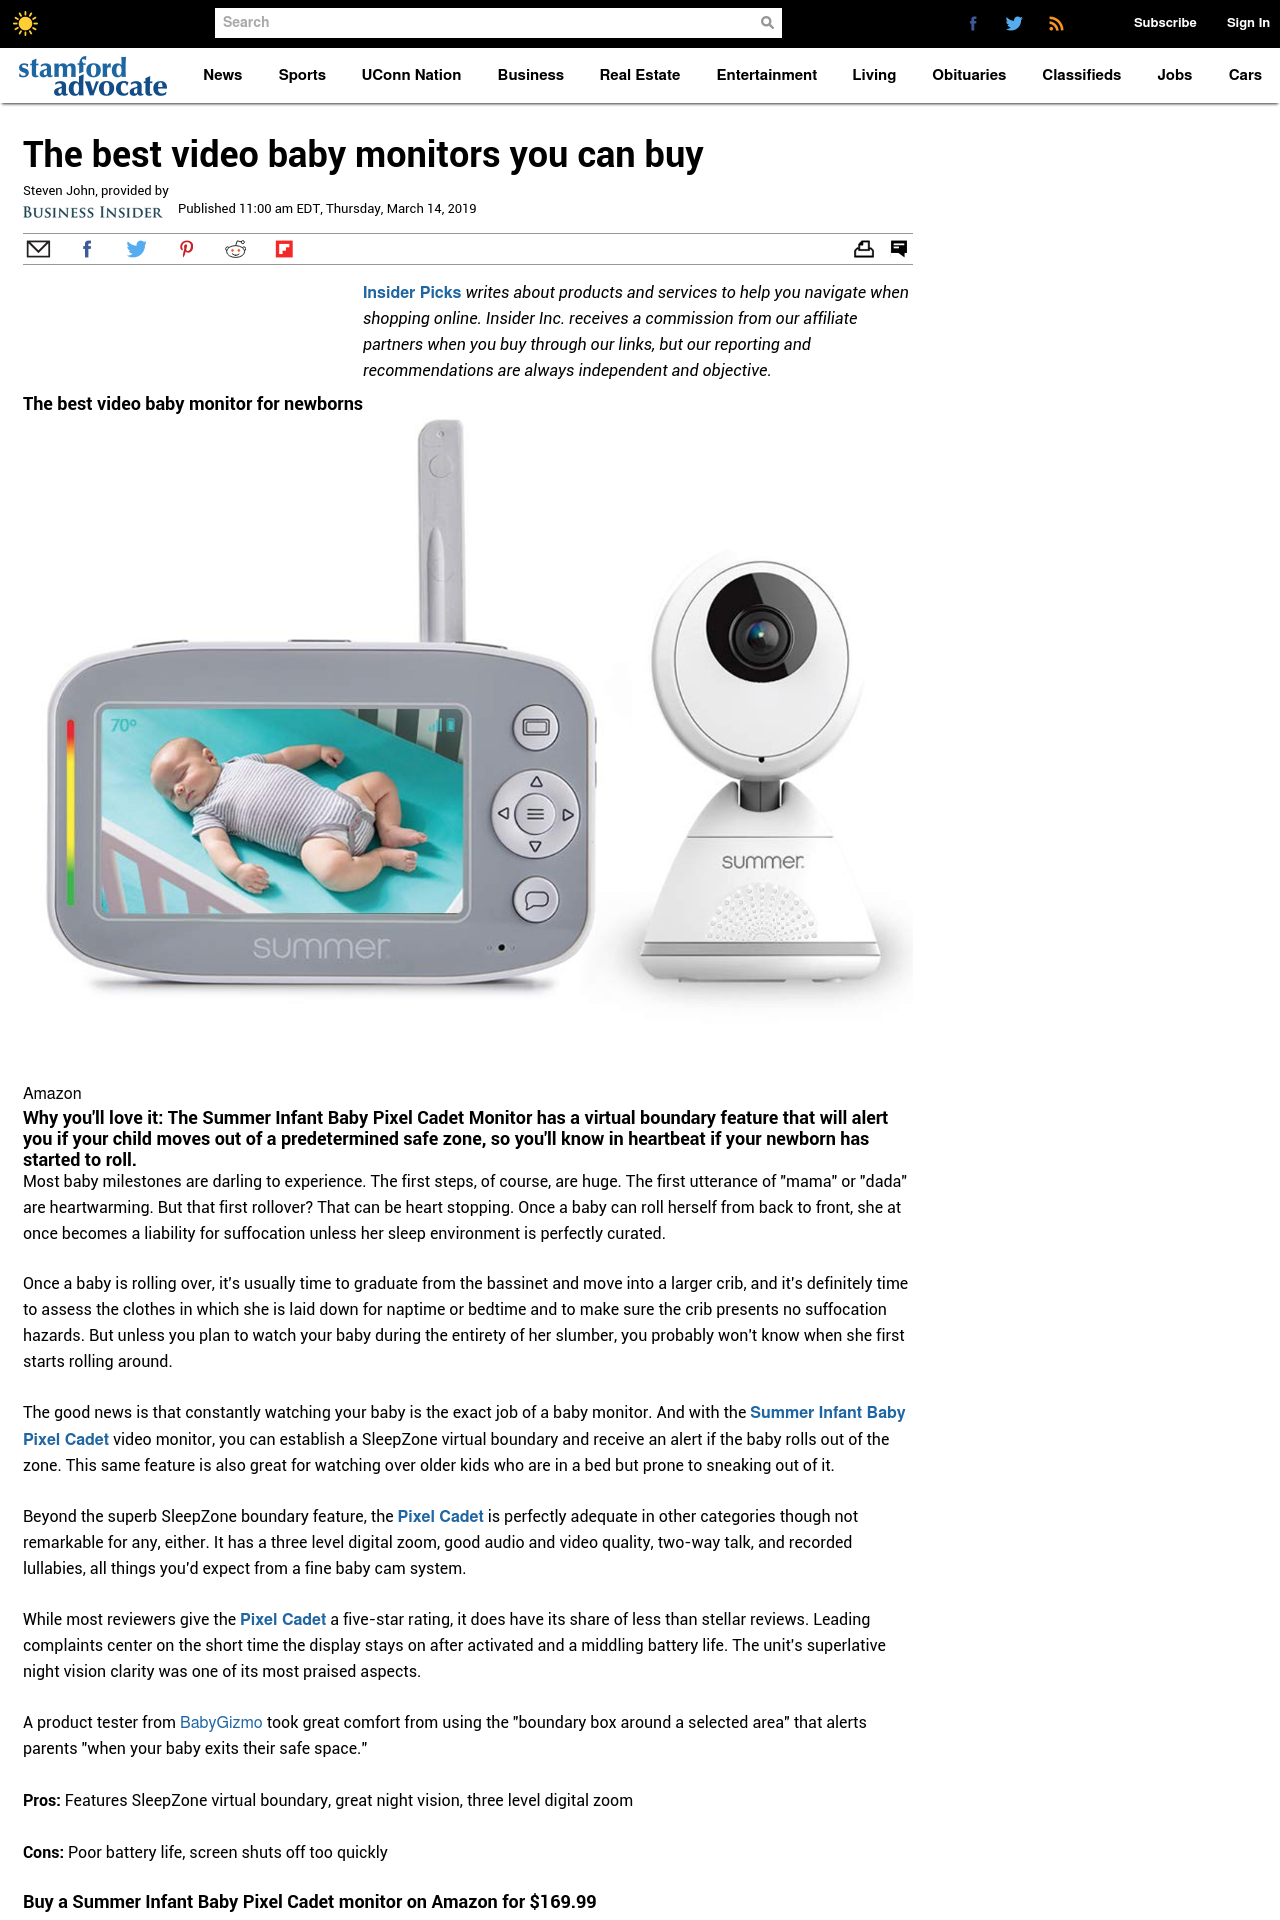 2019.03.14_Business Insider syndicated to Stamford Advocate Online_Baby Pixel Cadet Monitor_cropped 2x3.png